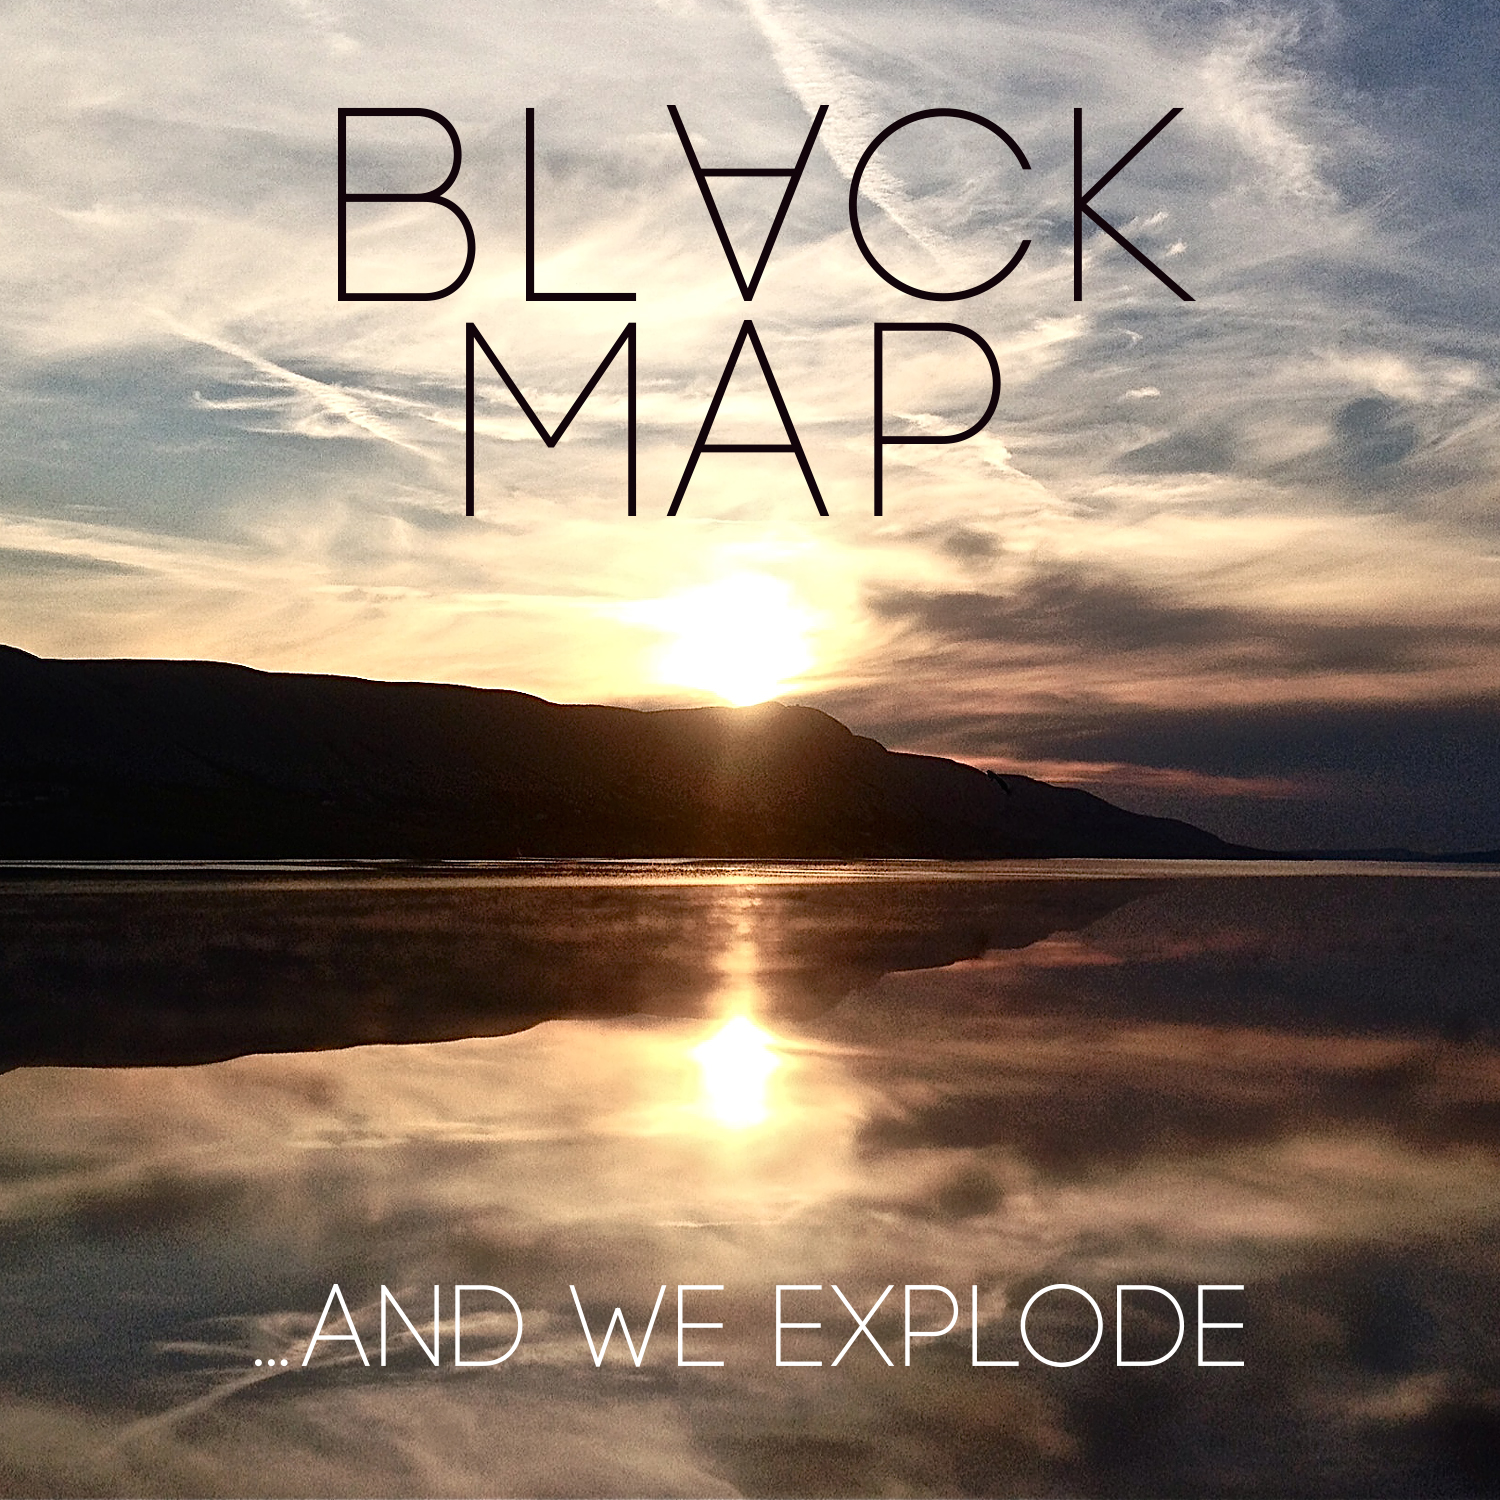 Black Map …AND WE EXPLODE